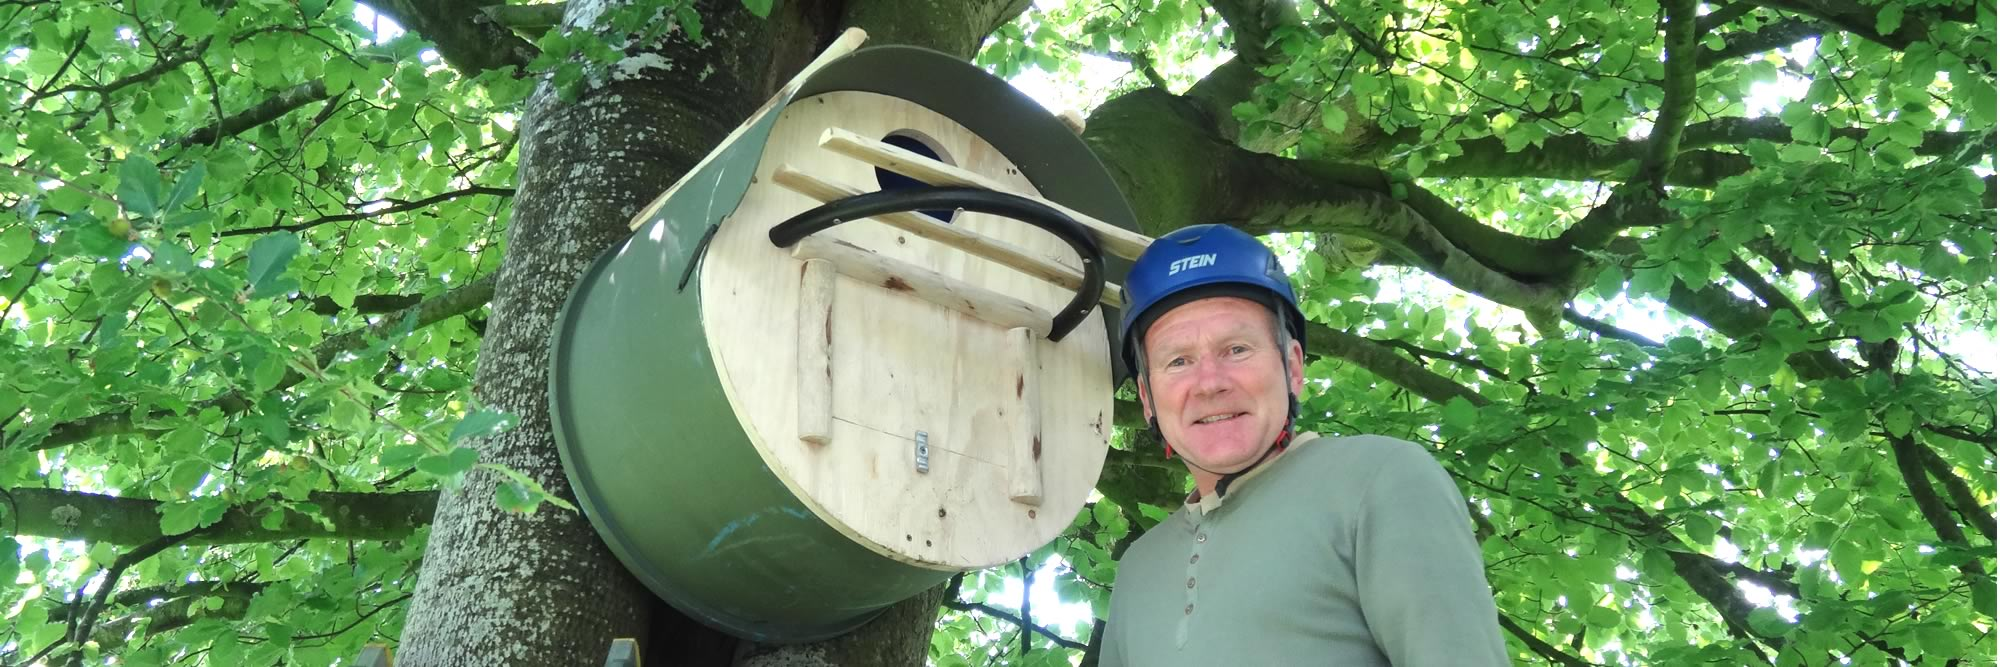 large owl box on a tree with a man in a hard hat